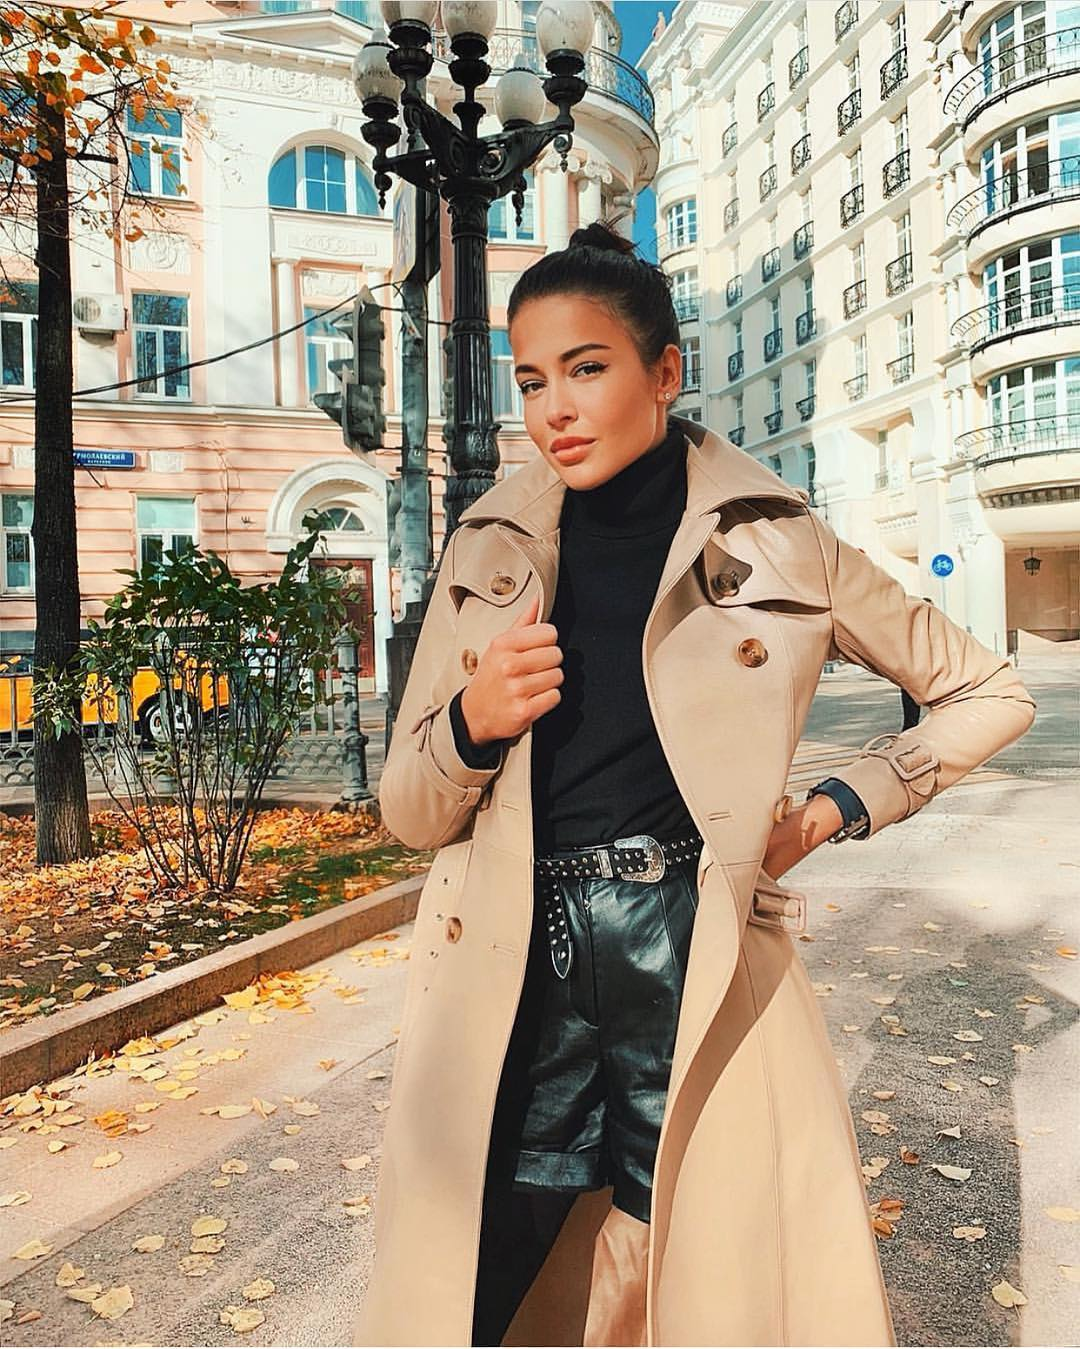 Beige Trench Coat And Black Leather Shorts For Autumn 2019